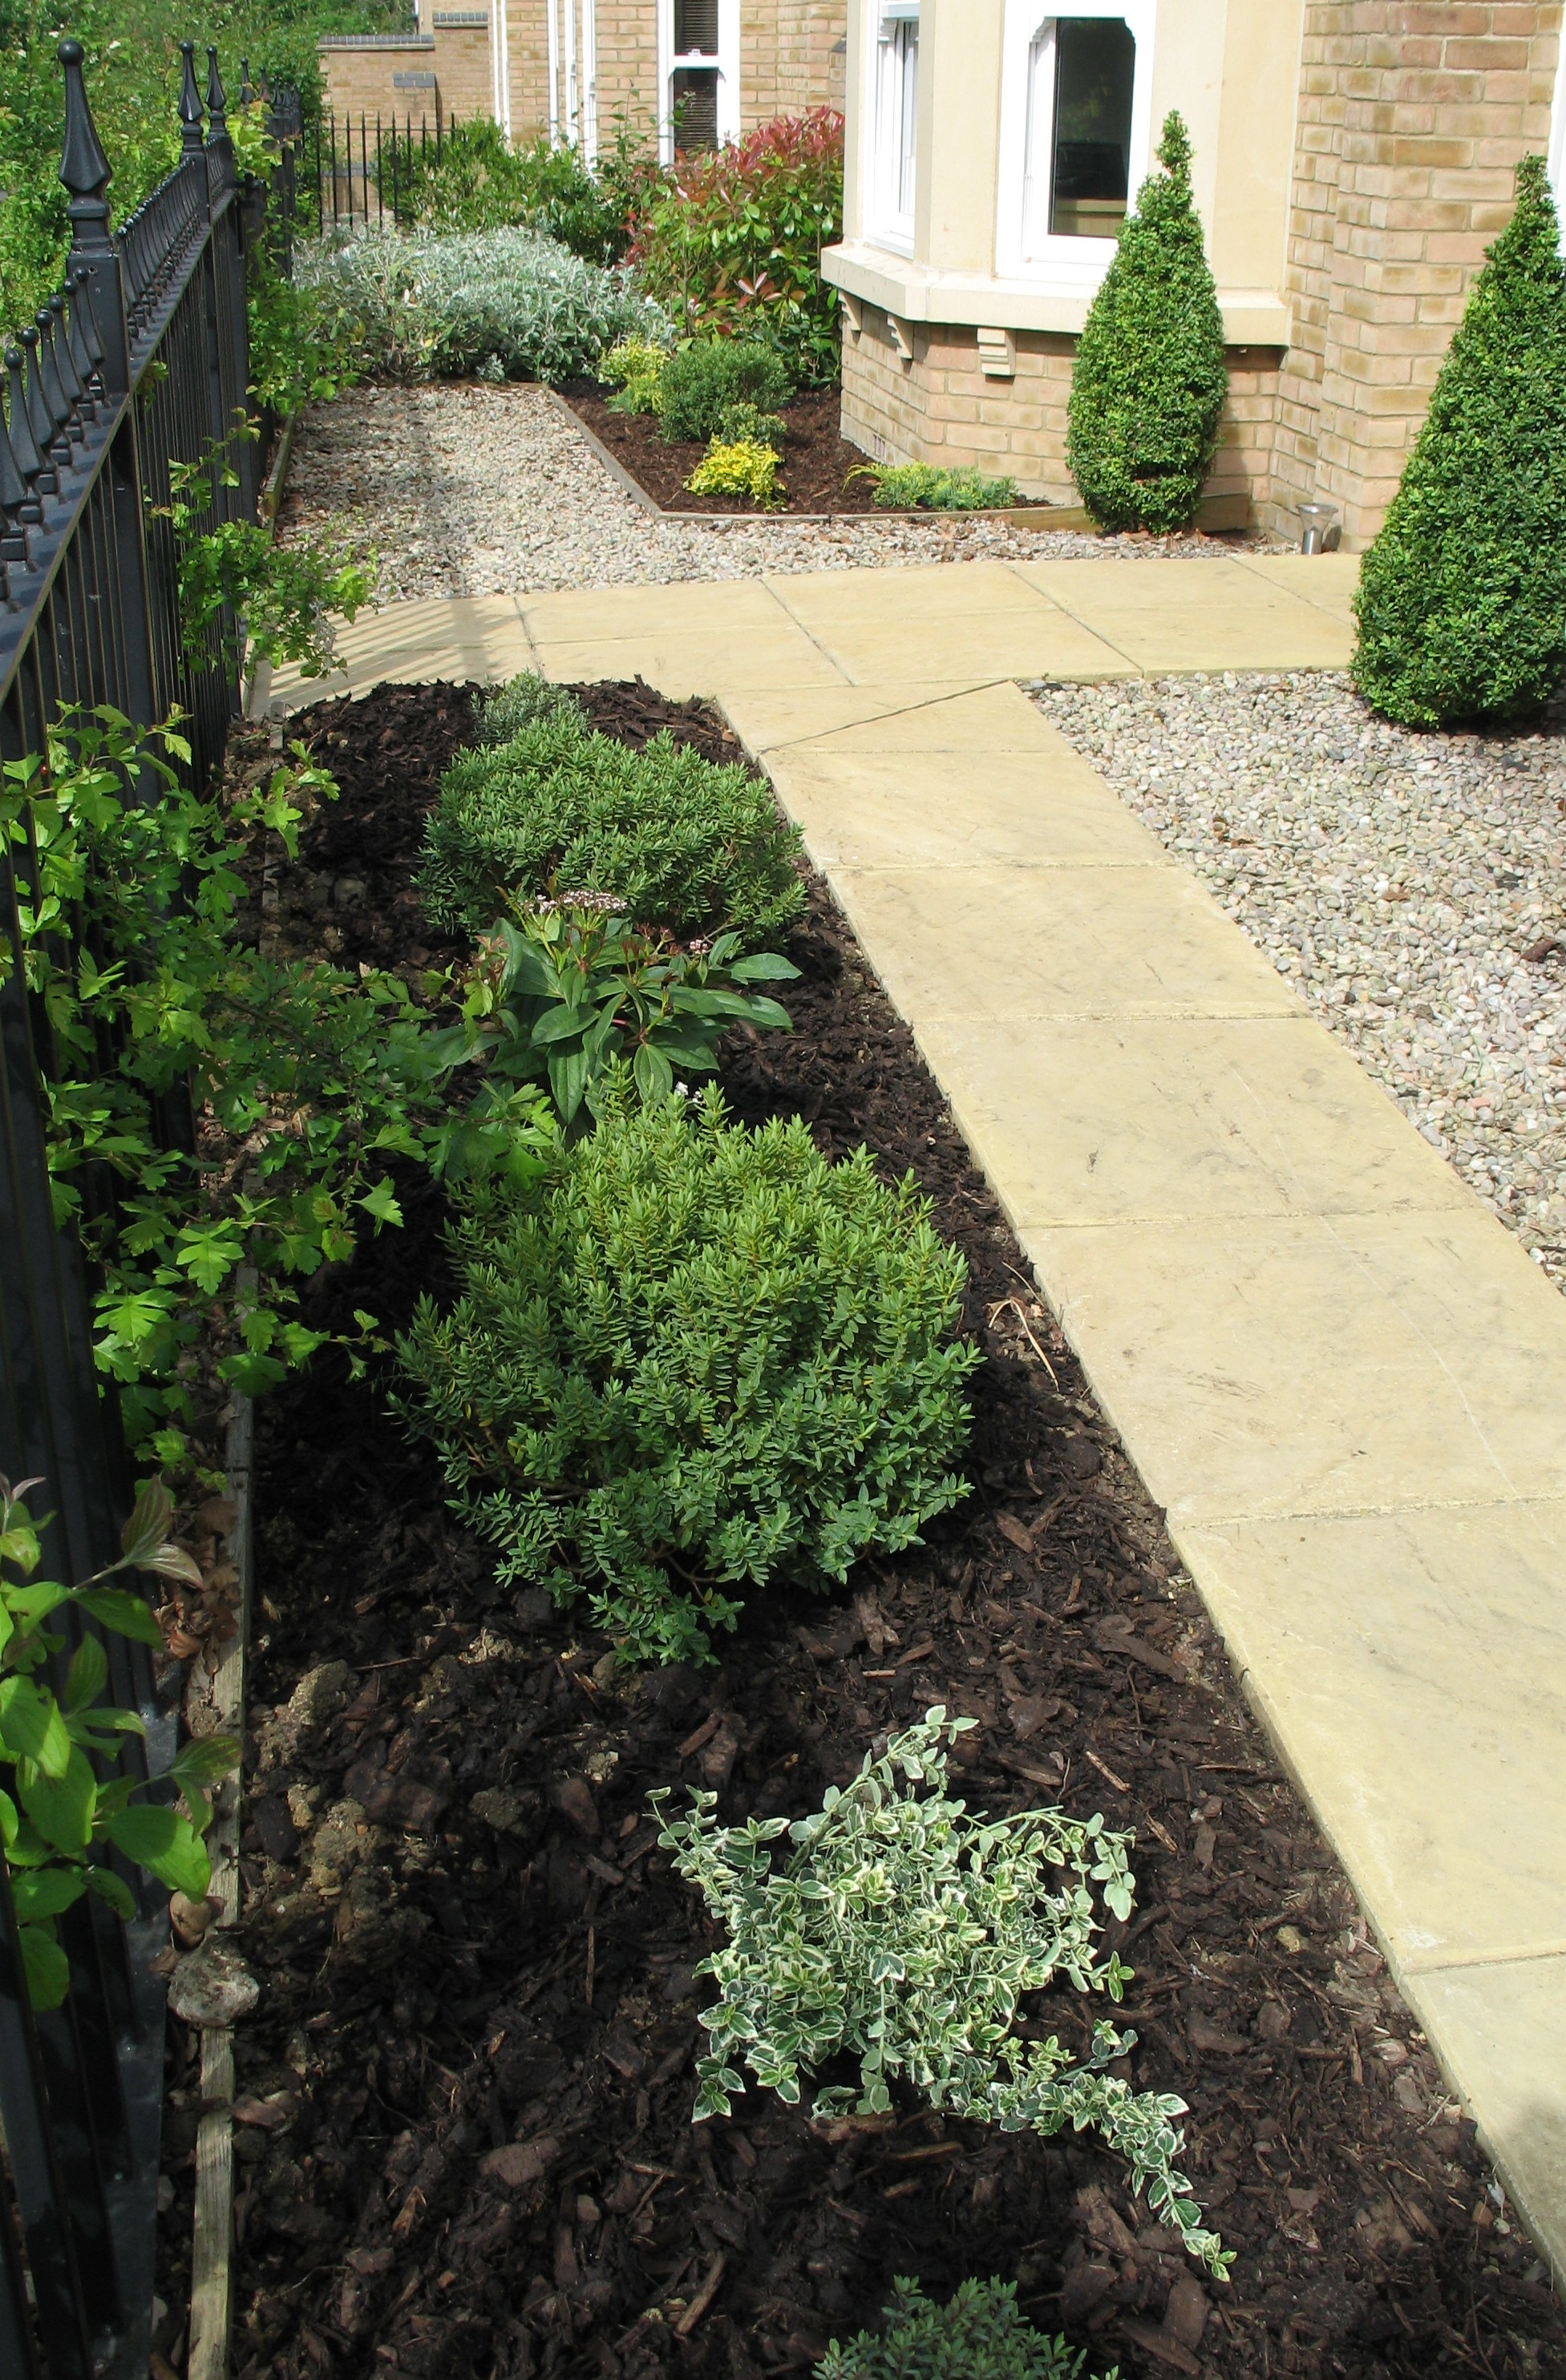 Easy plants for a front garden karen tizzard garden design for Landscape small front garden